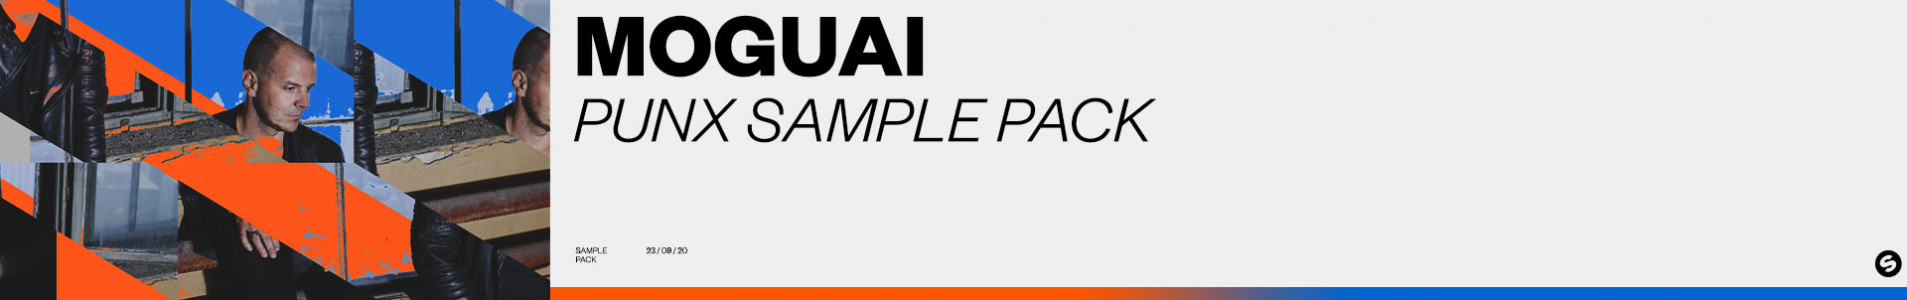 MOGUAI's PUNX Sample Pack is here to up your producing game!